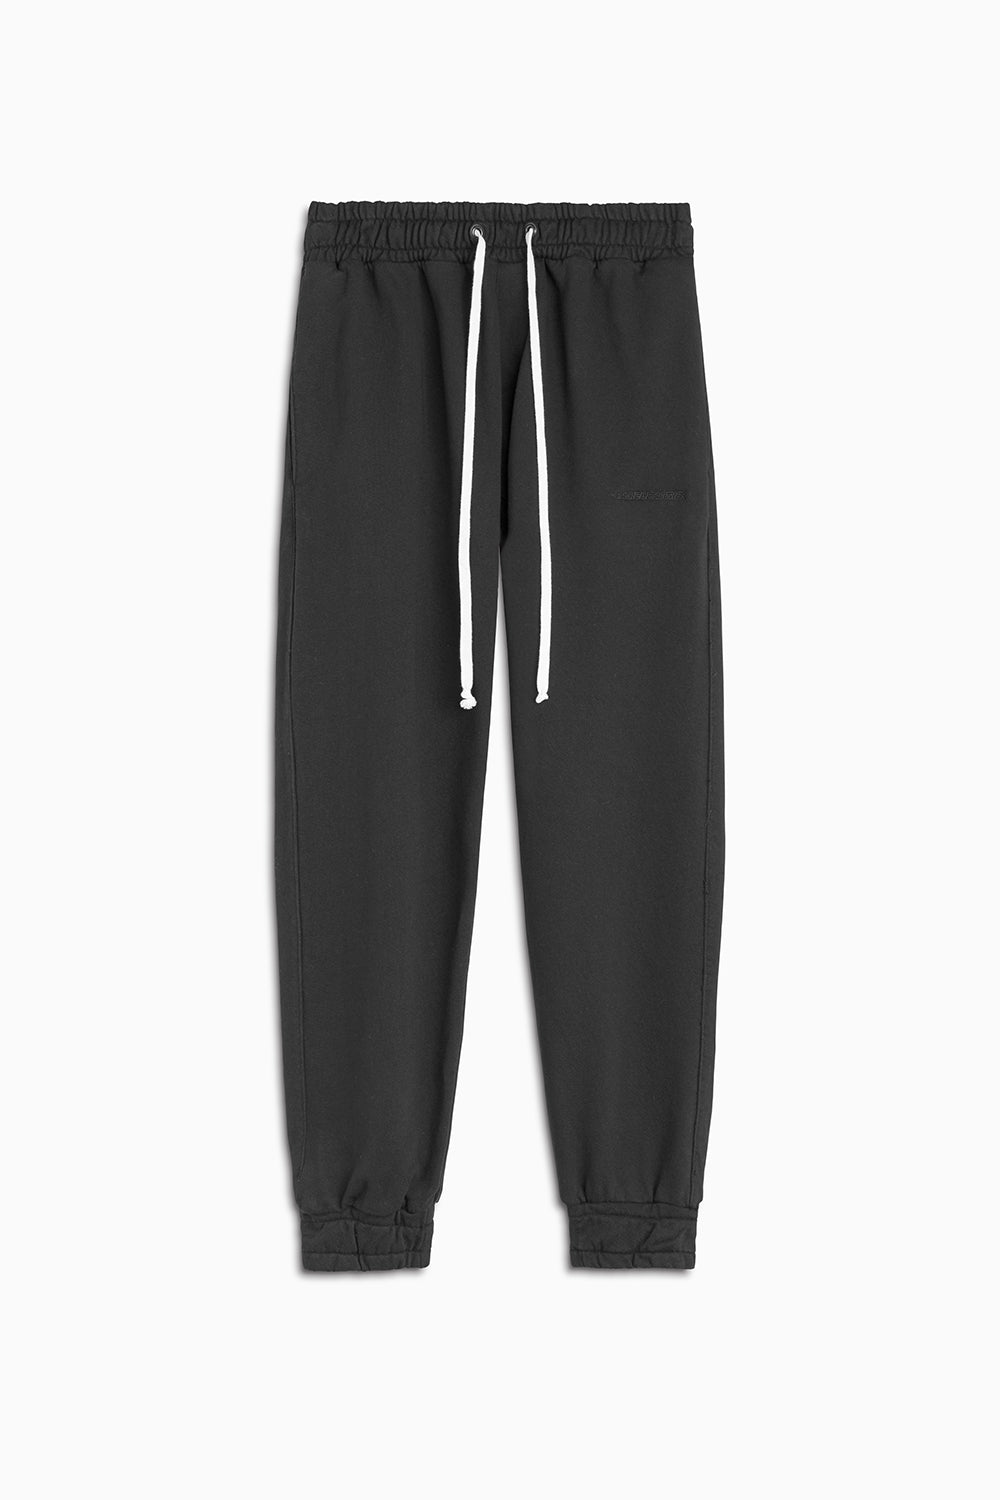 roaming track pant ii / black